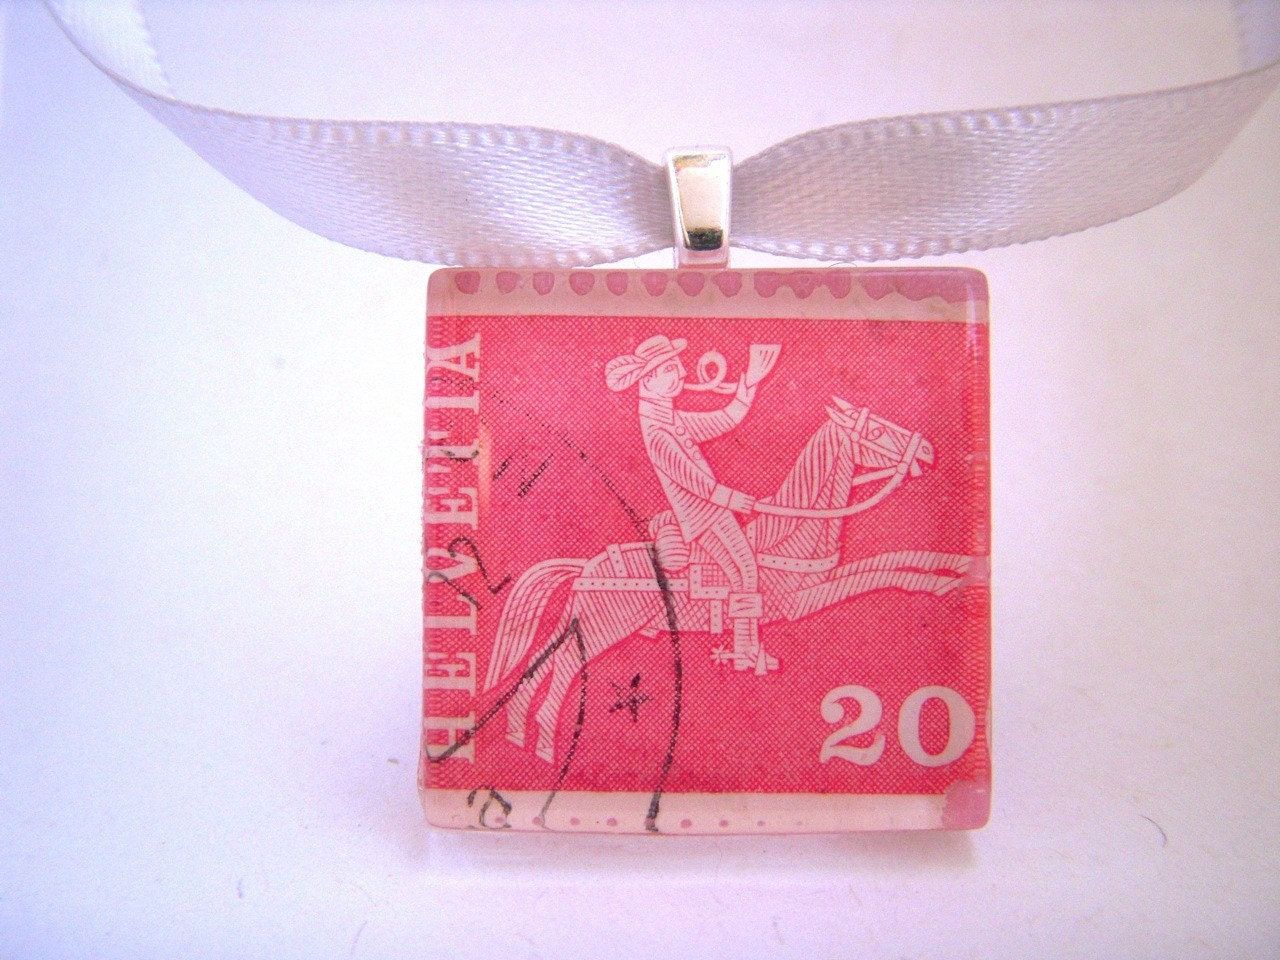 Vintage Swiss Postage Stamp Necklace. Helvetia Cowboy. Handcrafted by Juanitas on Etsy.